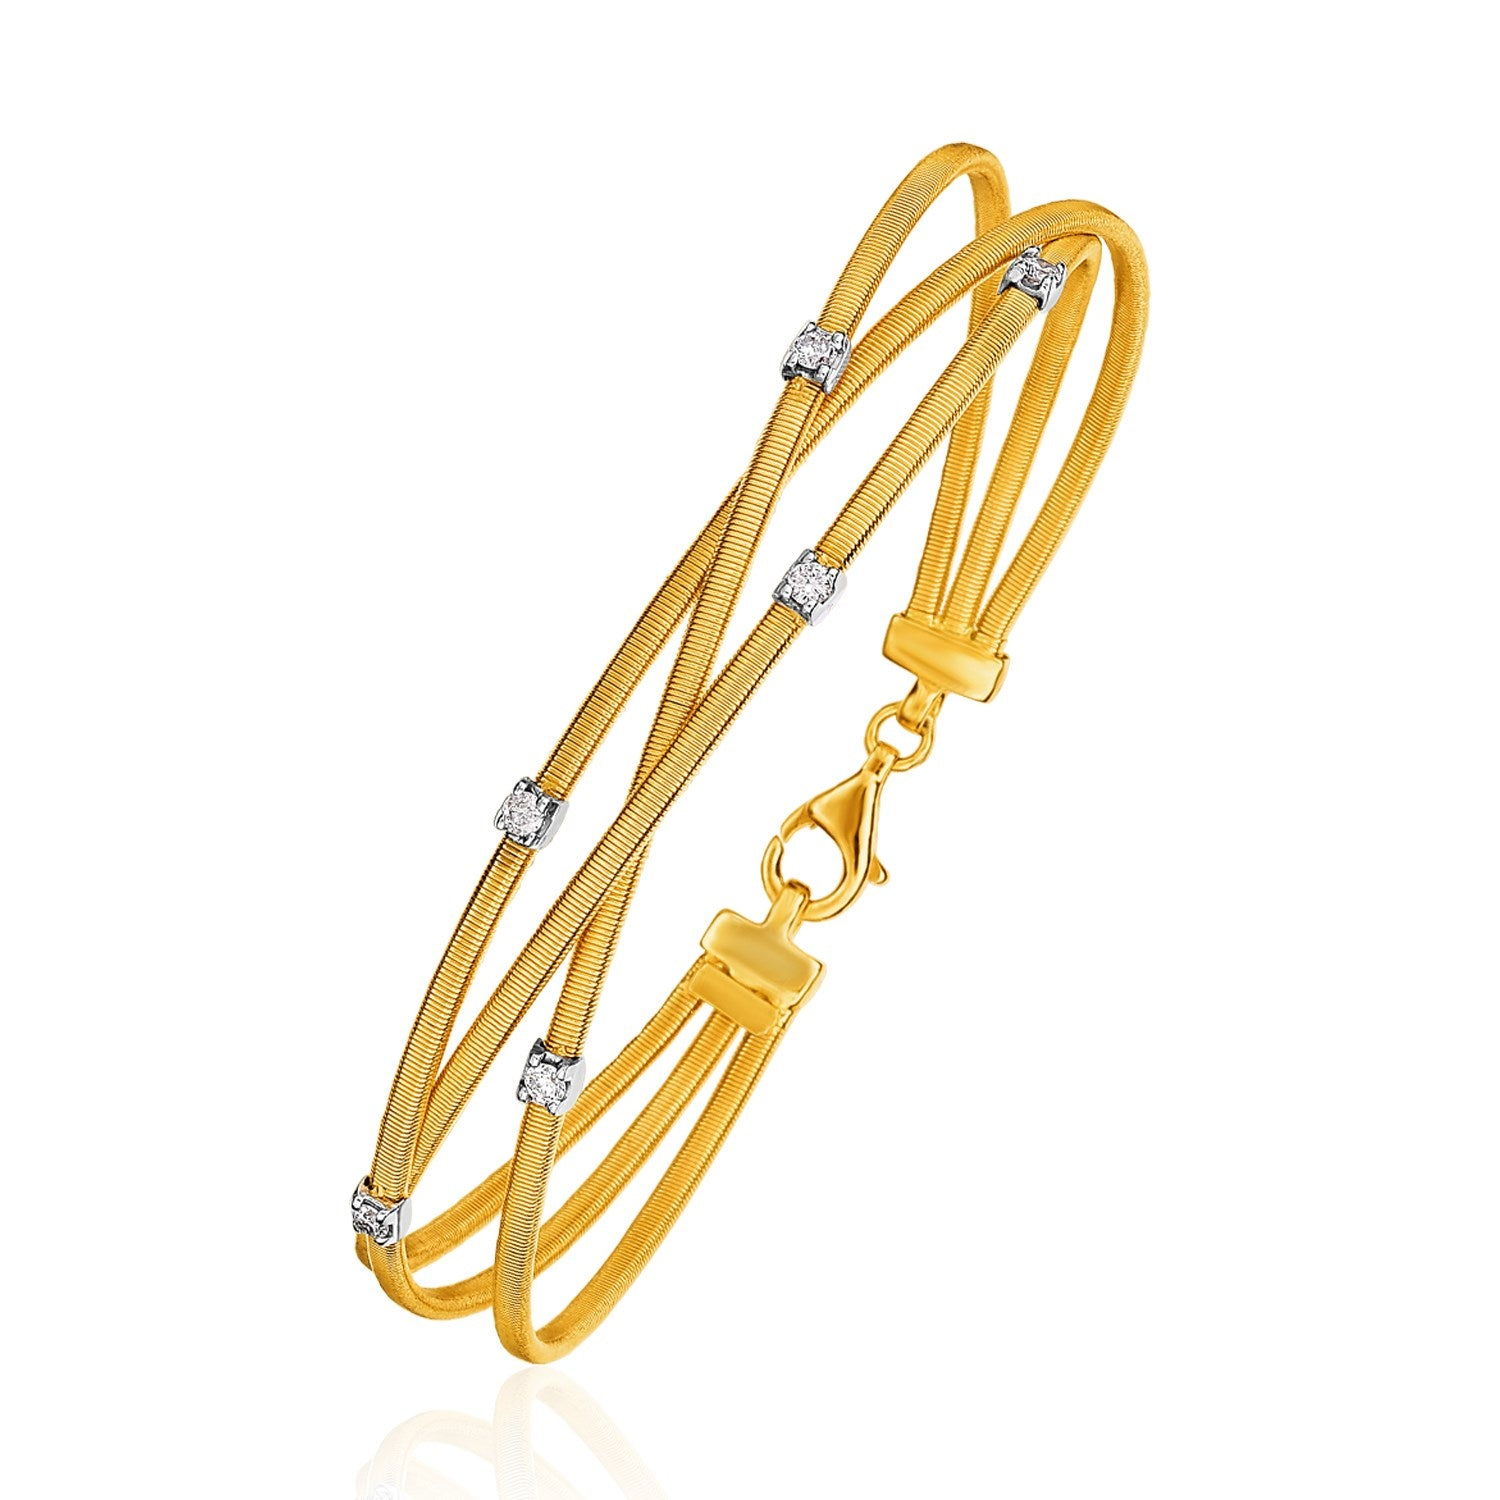 setting p clasp diamond with color bracelet bangles good box bangle very safety type clarity ct four yellow tw i hidden prong cut tennis average shape gold round